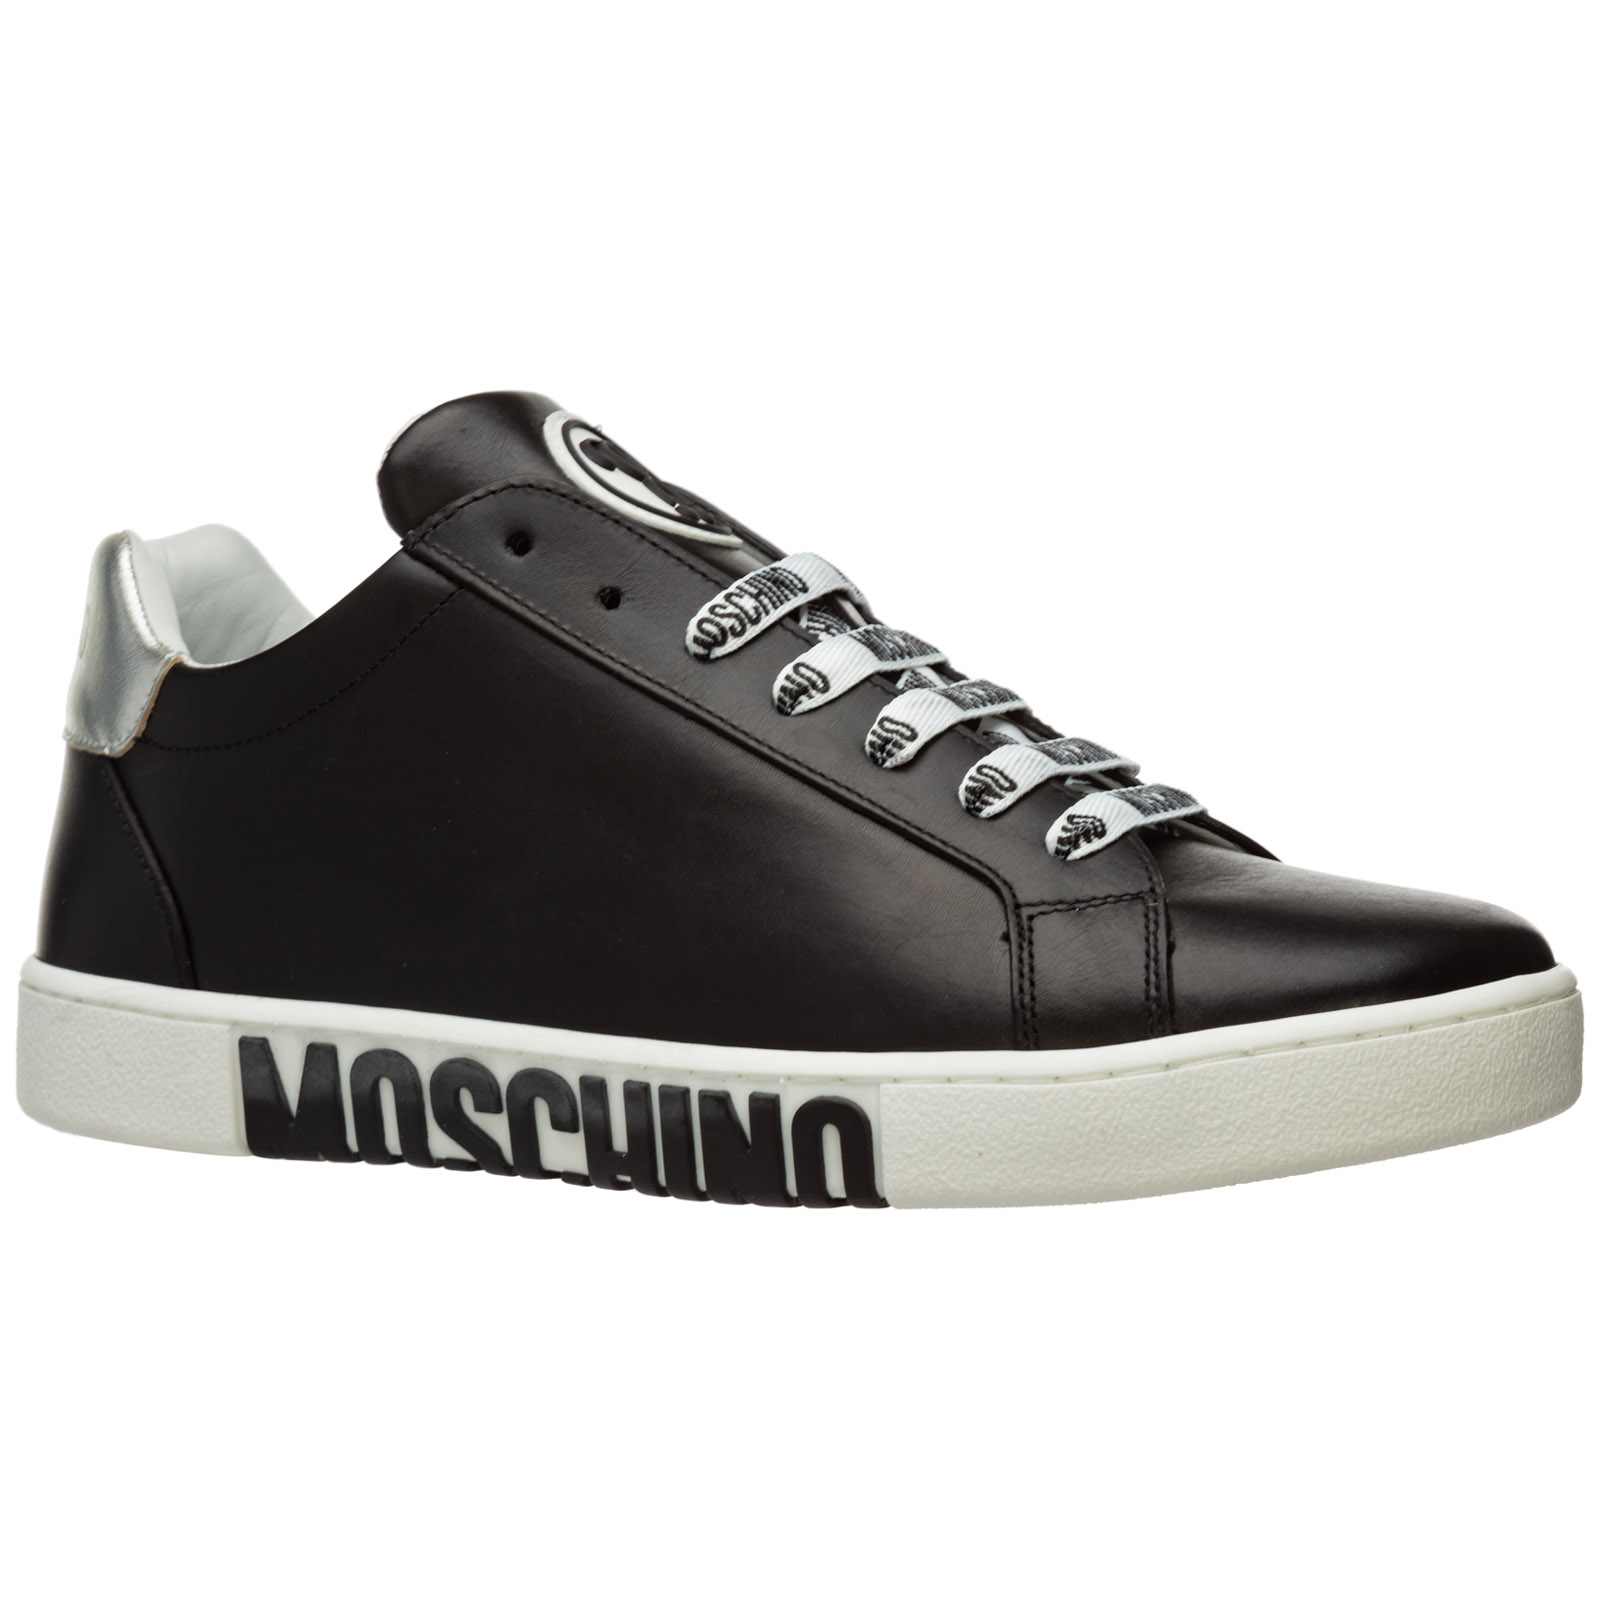 Sneakers Moschino double question mark